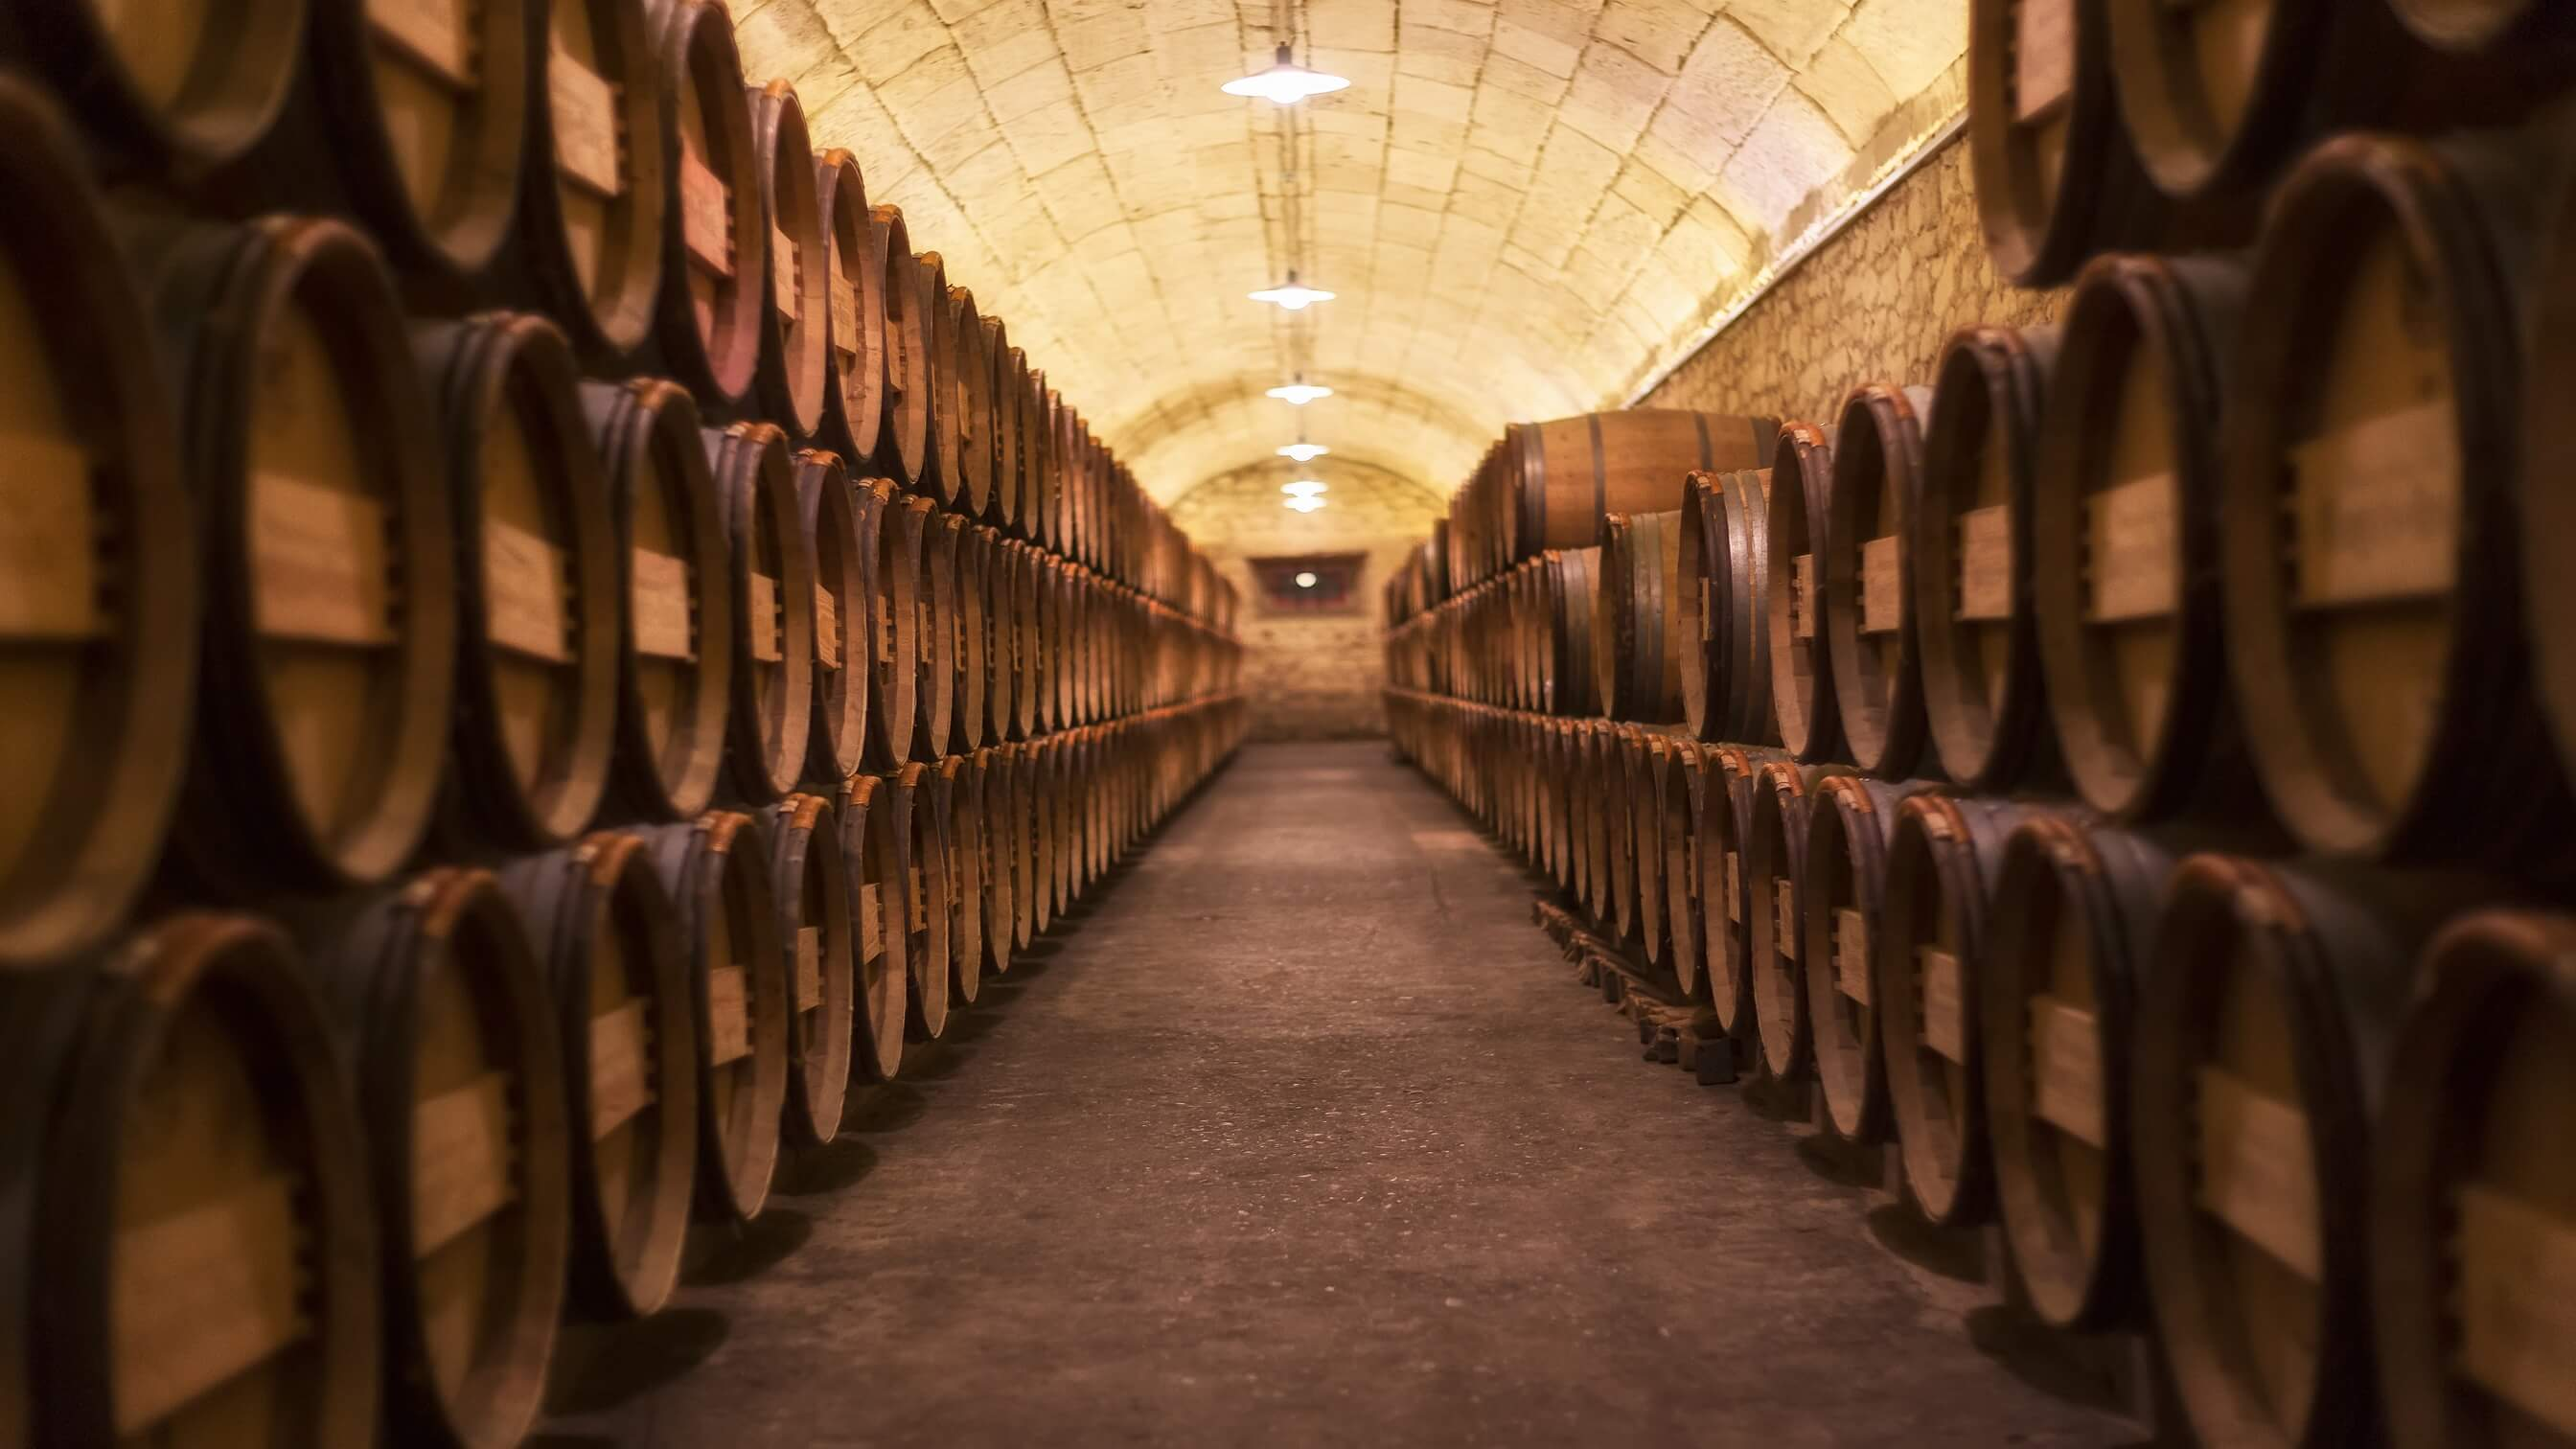 Preventing soaring temperatures from spoiling wine batches